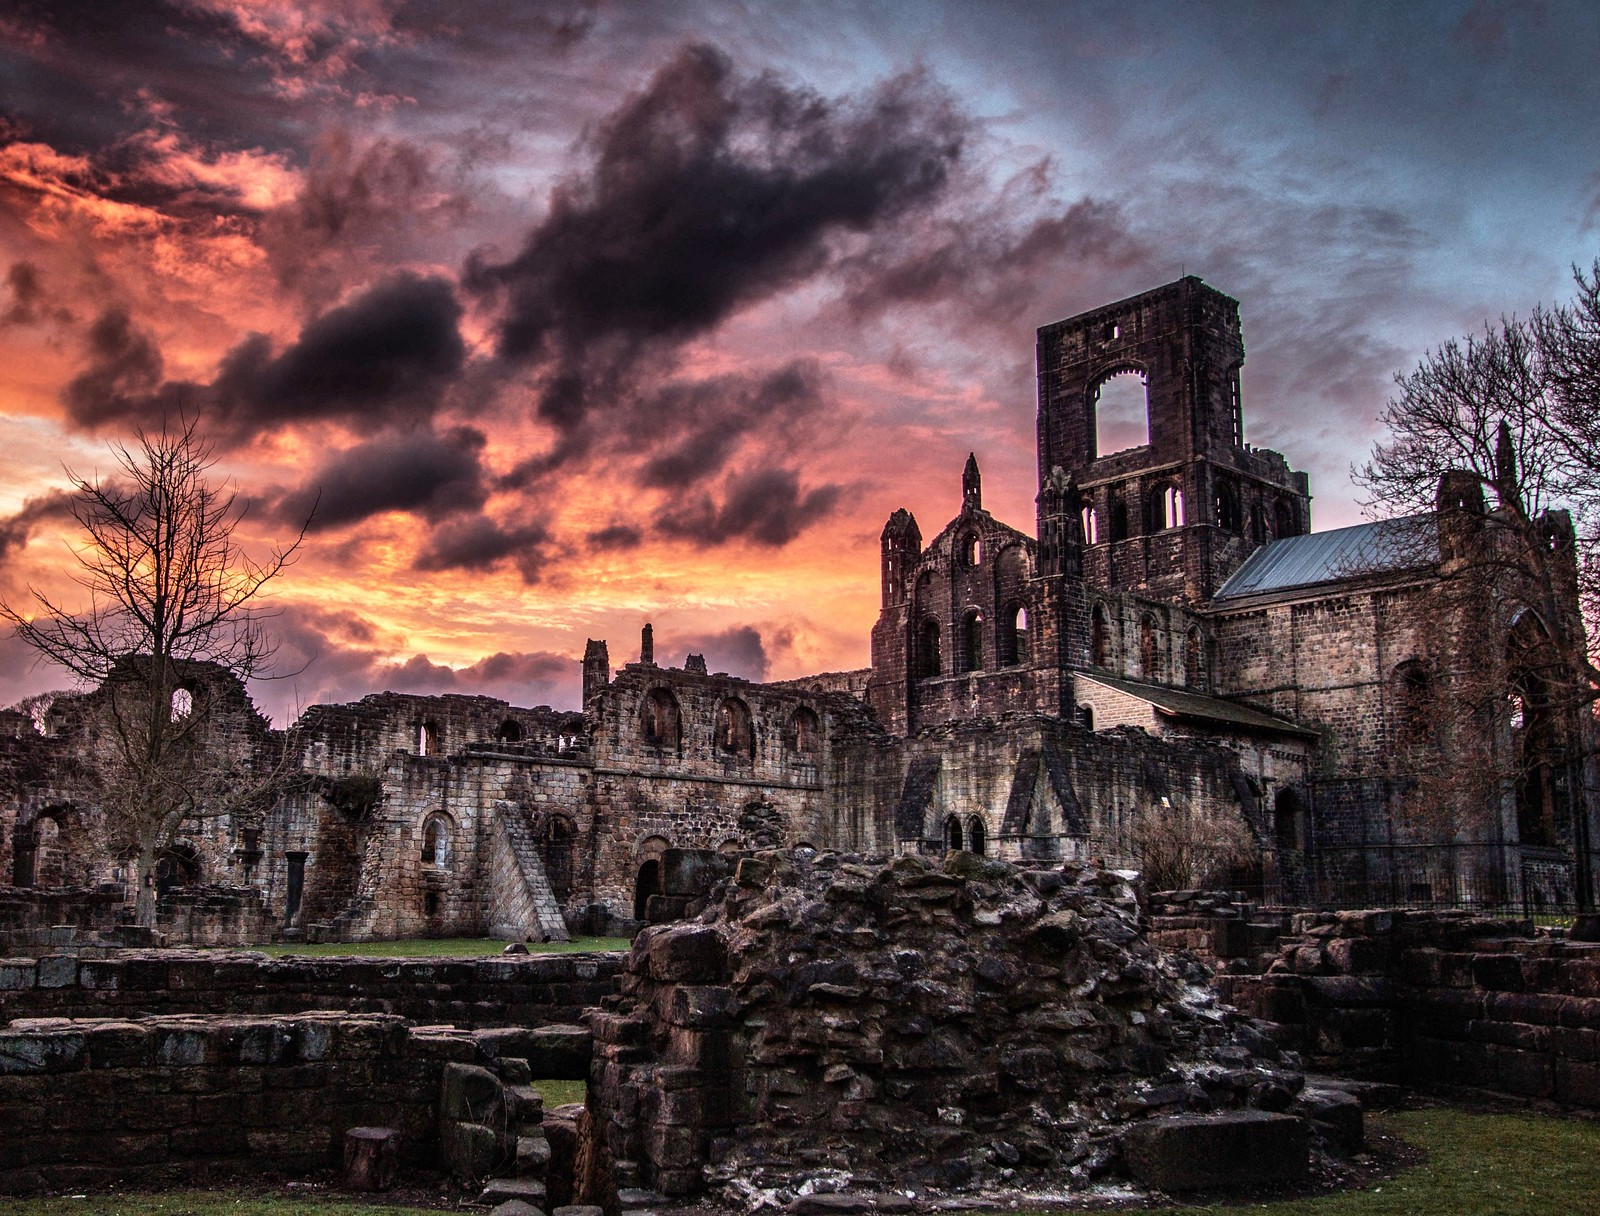 Kirkstall Abbey at sunset. Credit Minda